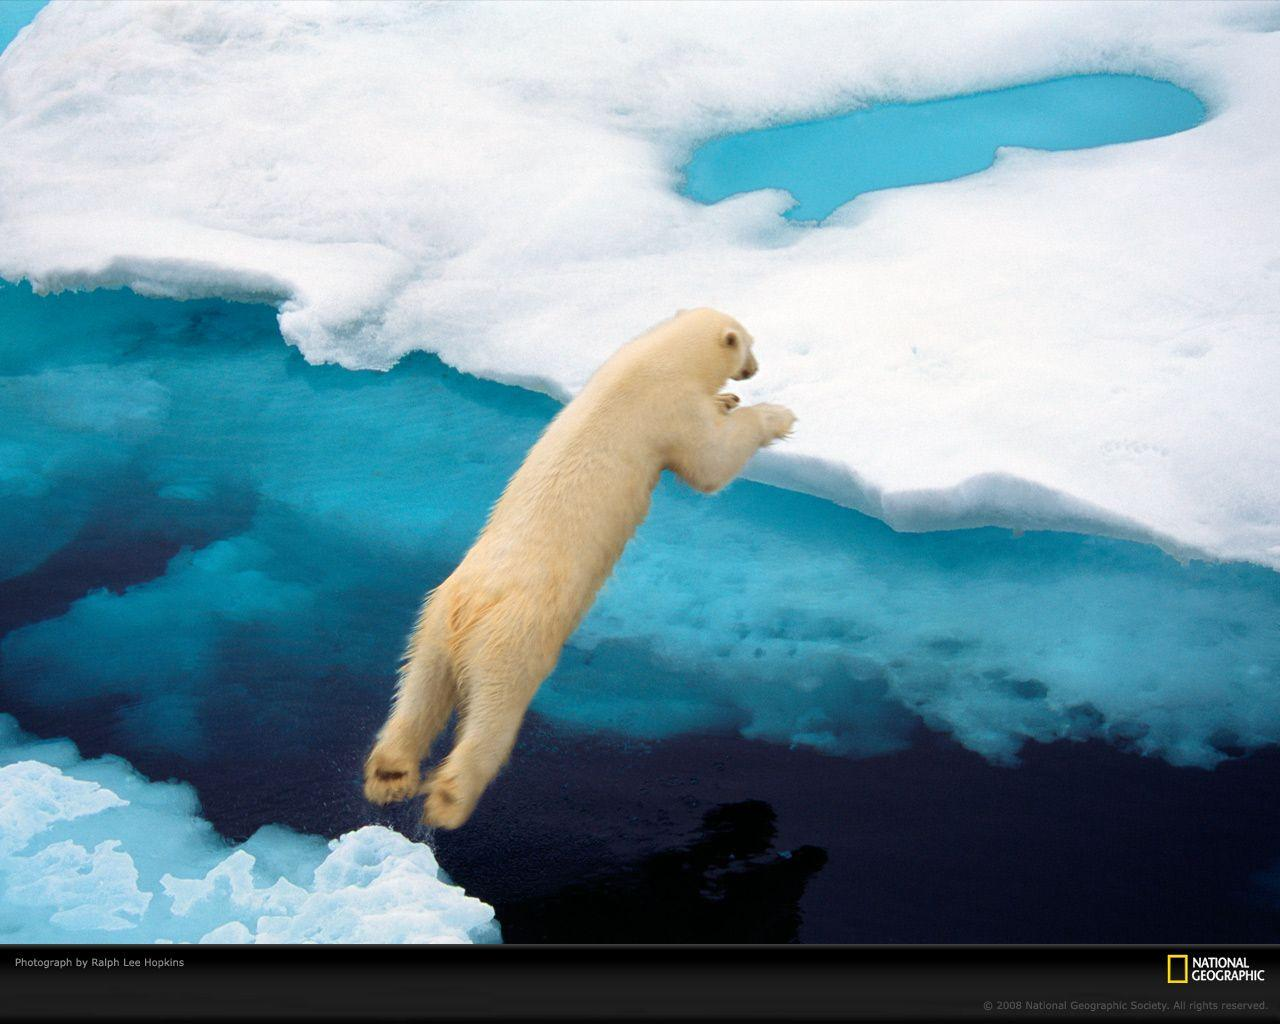 Wallpaper download national geographic - Polar Bear Photo Life In Color Blue Wallpaper Download Photos